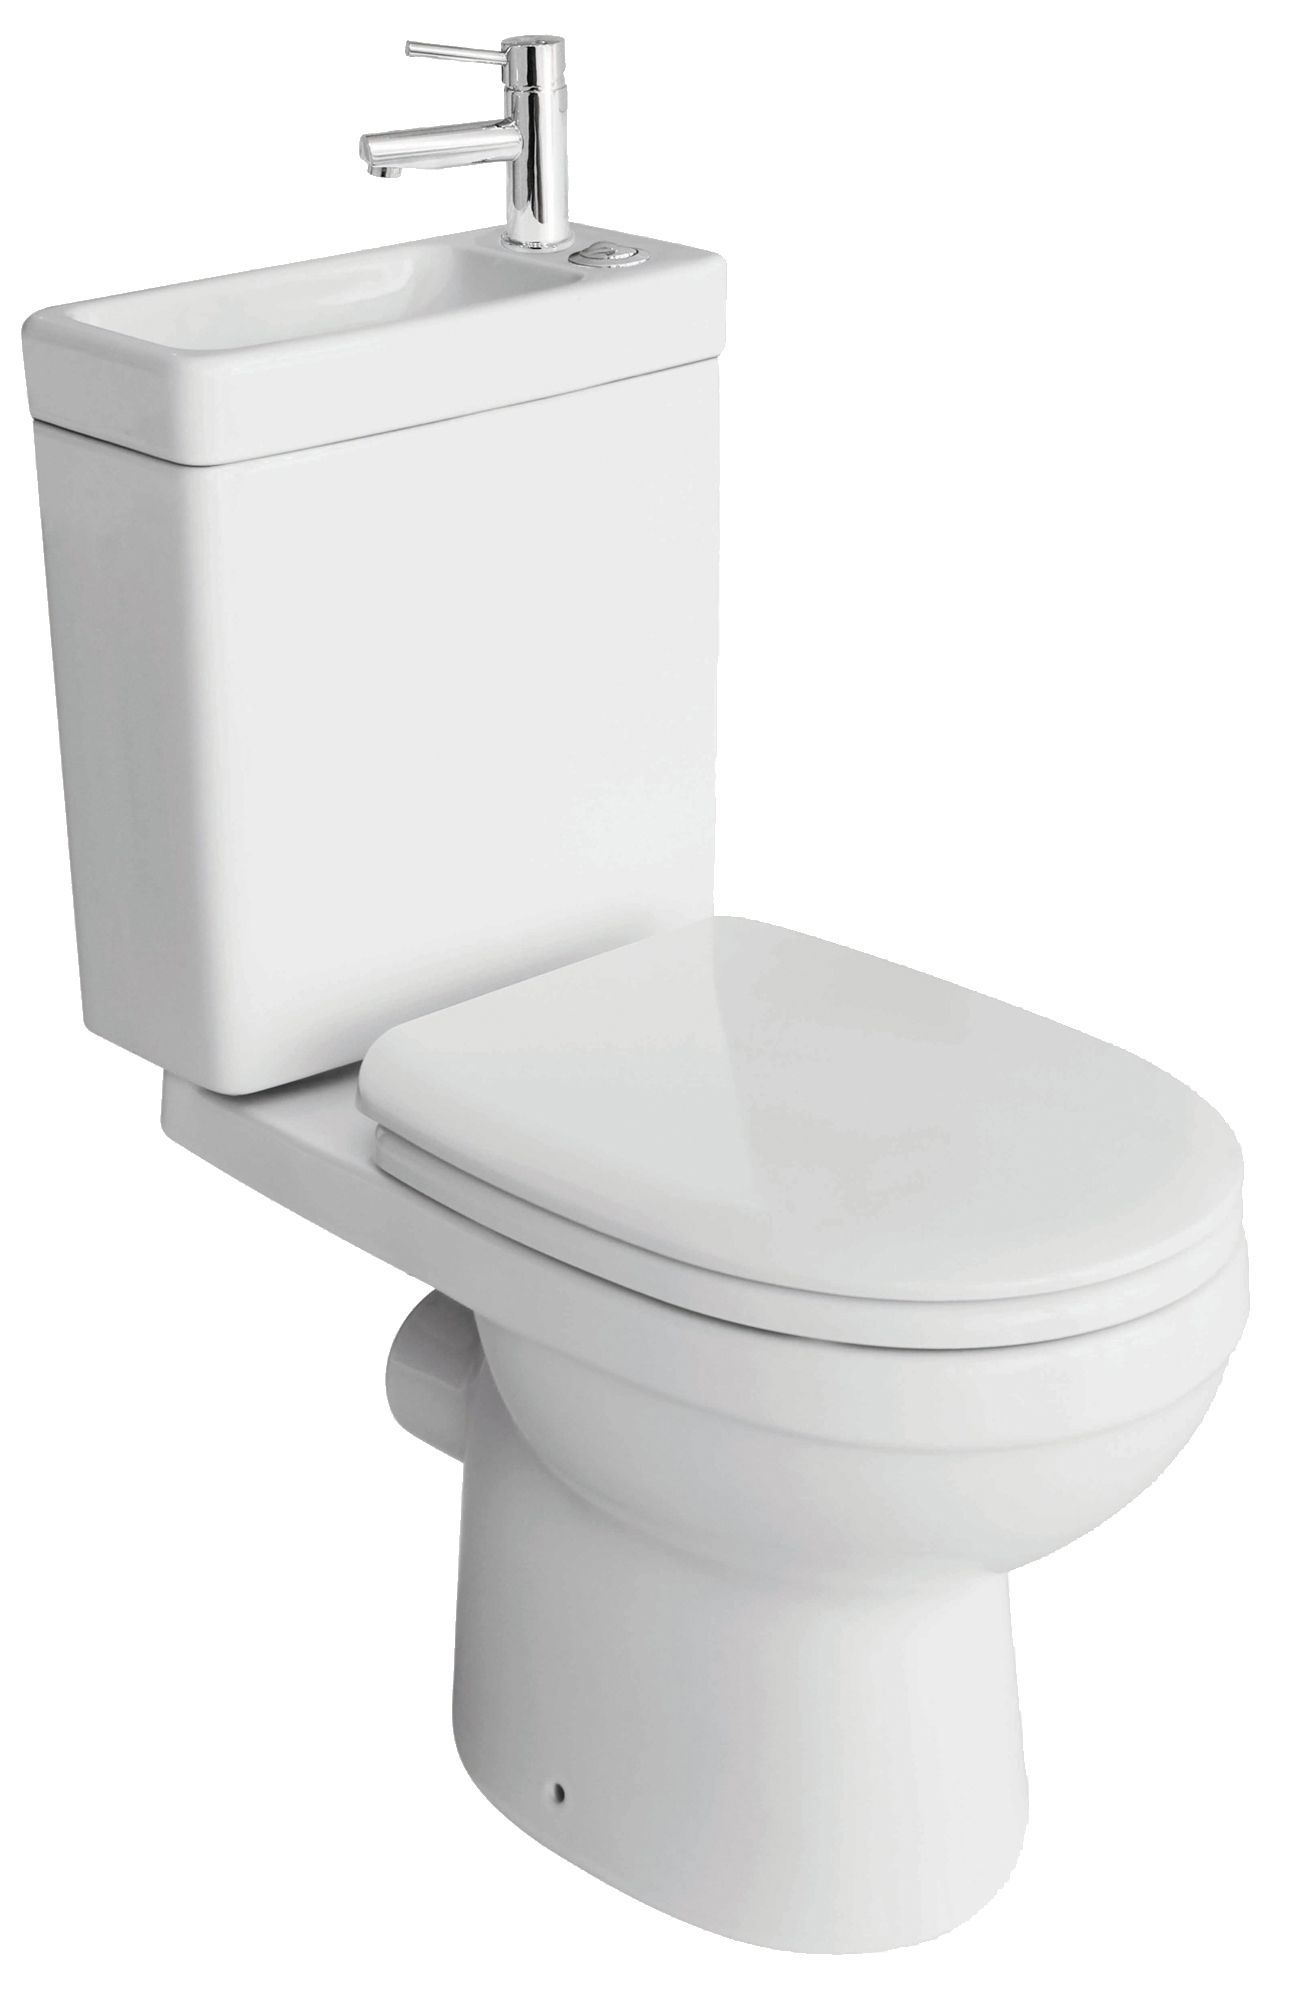 Cooke & Lewis Duetto Close-Coupled Toilet with Integrated Basin with Soft  Close Seat |